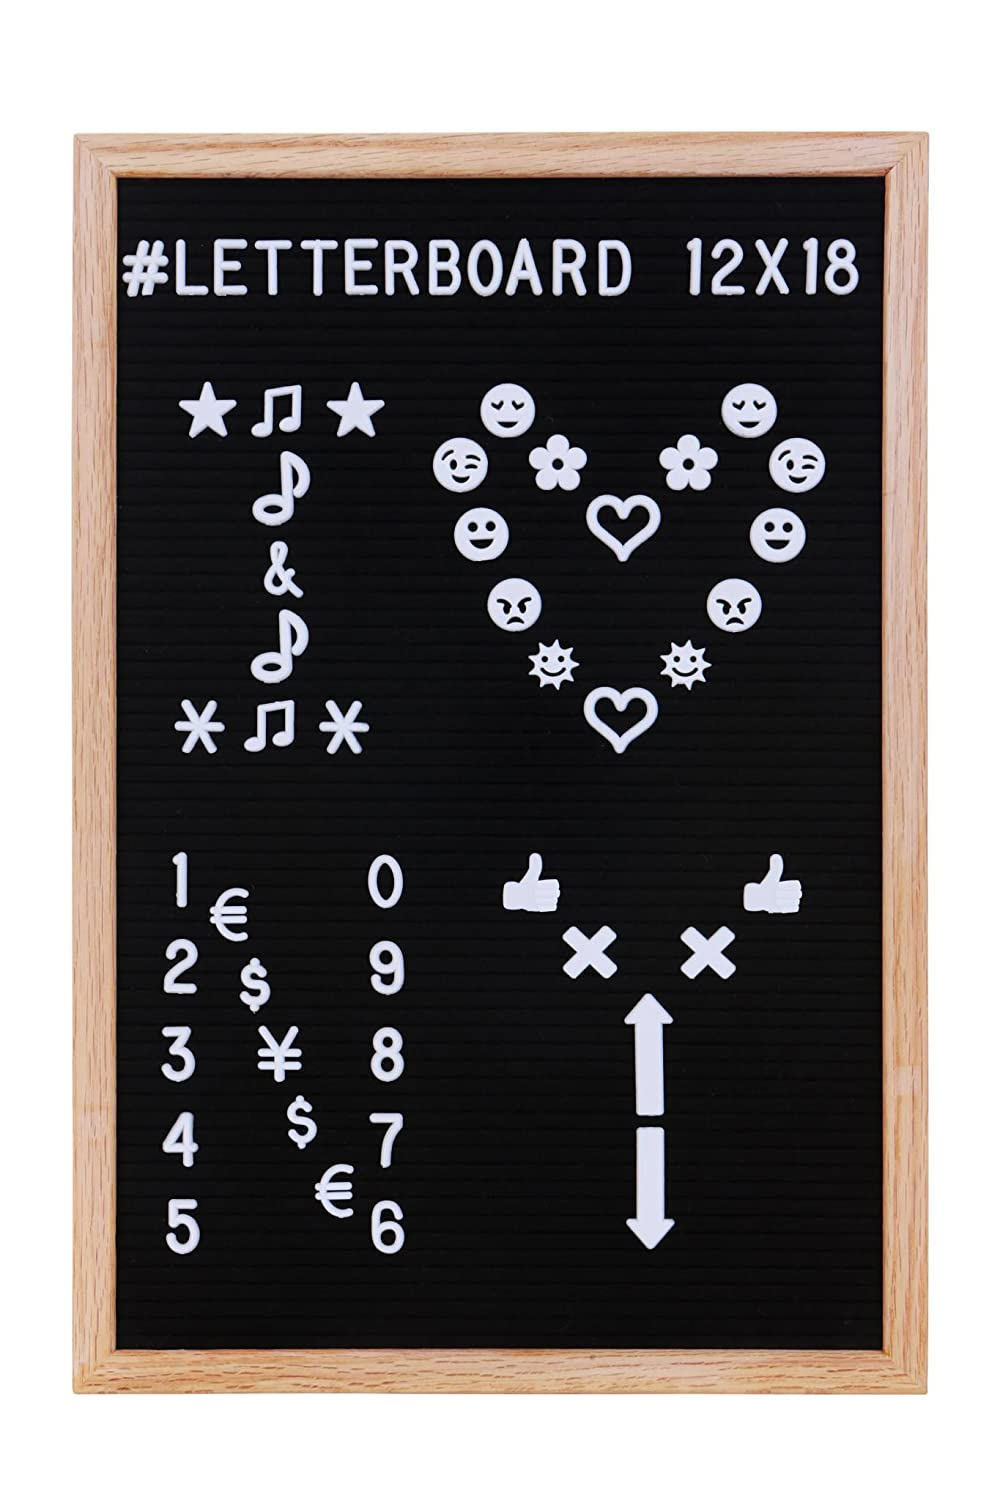 12x18'' Changeable Felt Letter Board - Letterboard With 688 Characters, Symbols And Emoji Tiles Set, With Two Storing Bags, By Globiss.